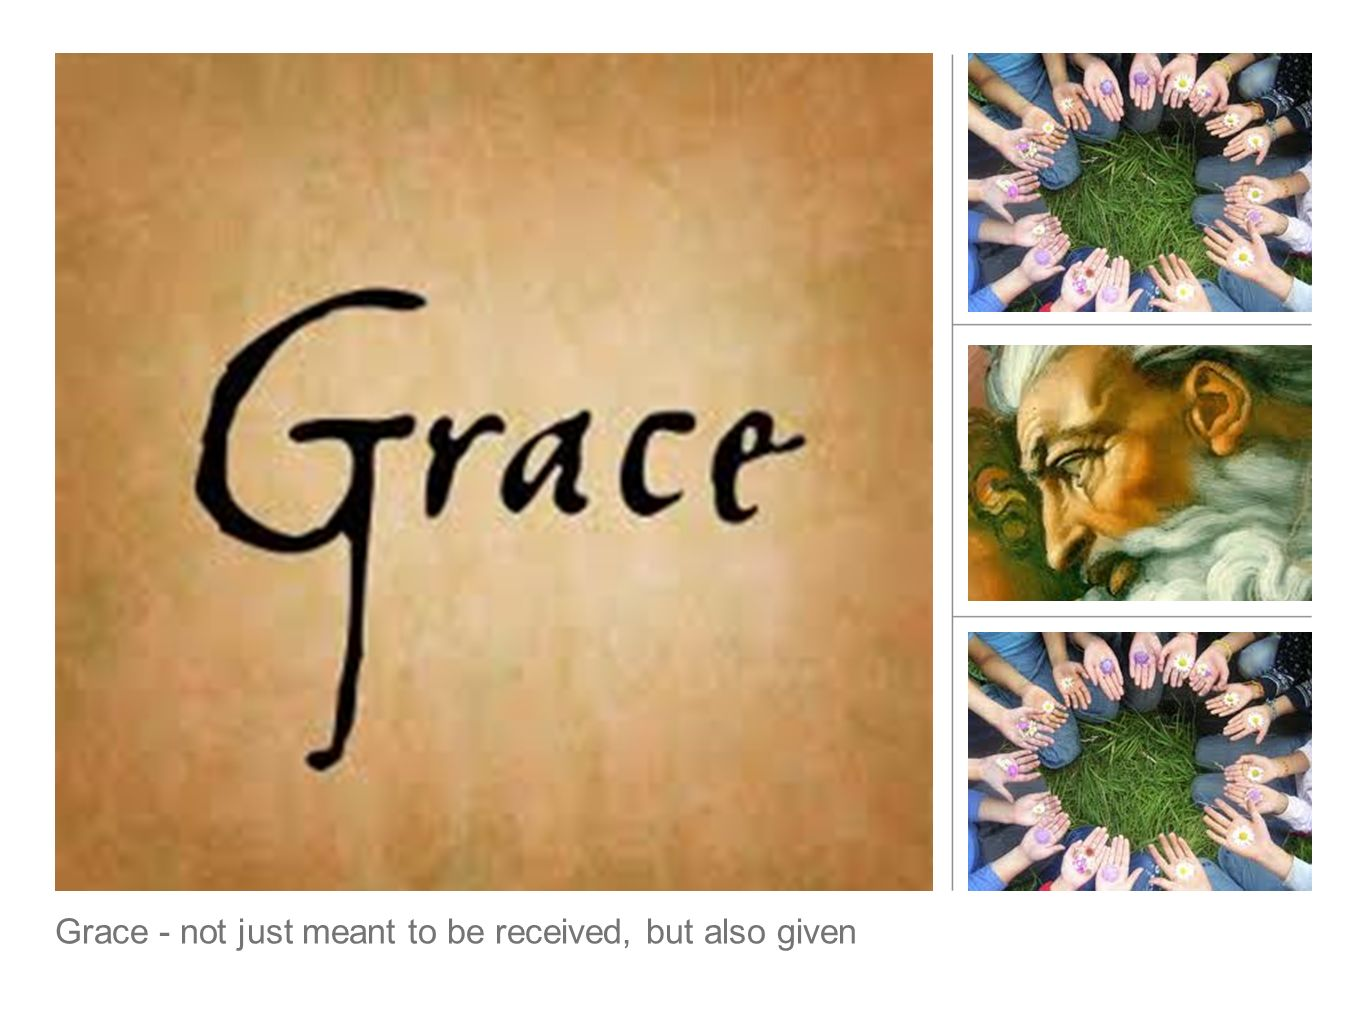 Grace - not just meant to be received, but also given